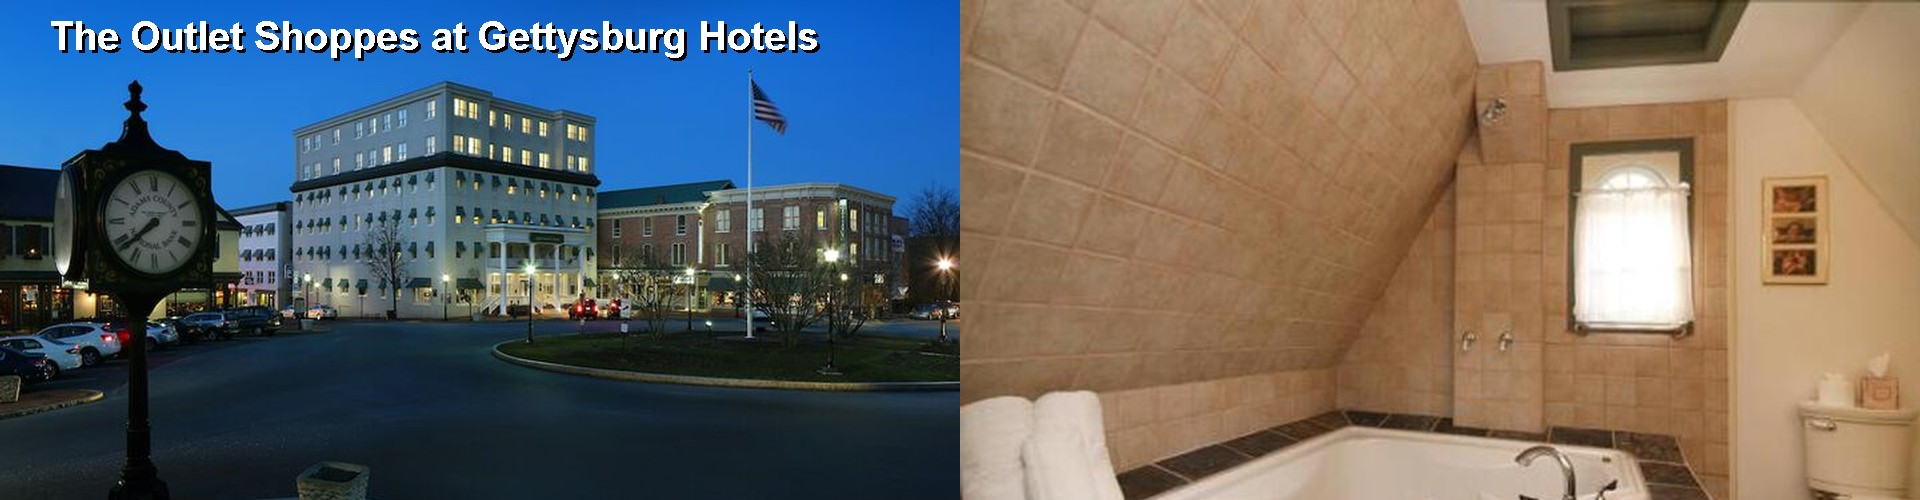 5 Best Hotels near The Outlet Shoppes at Gettysburg